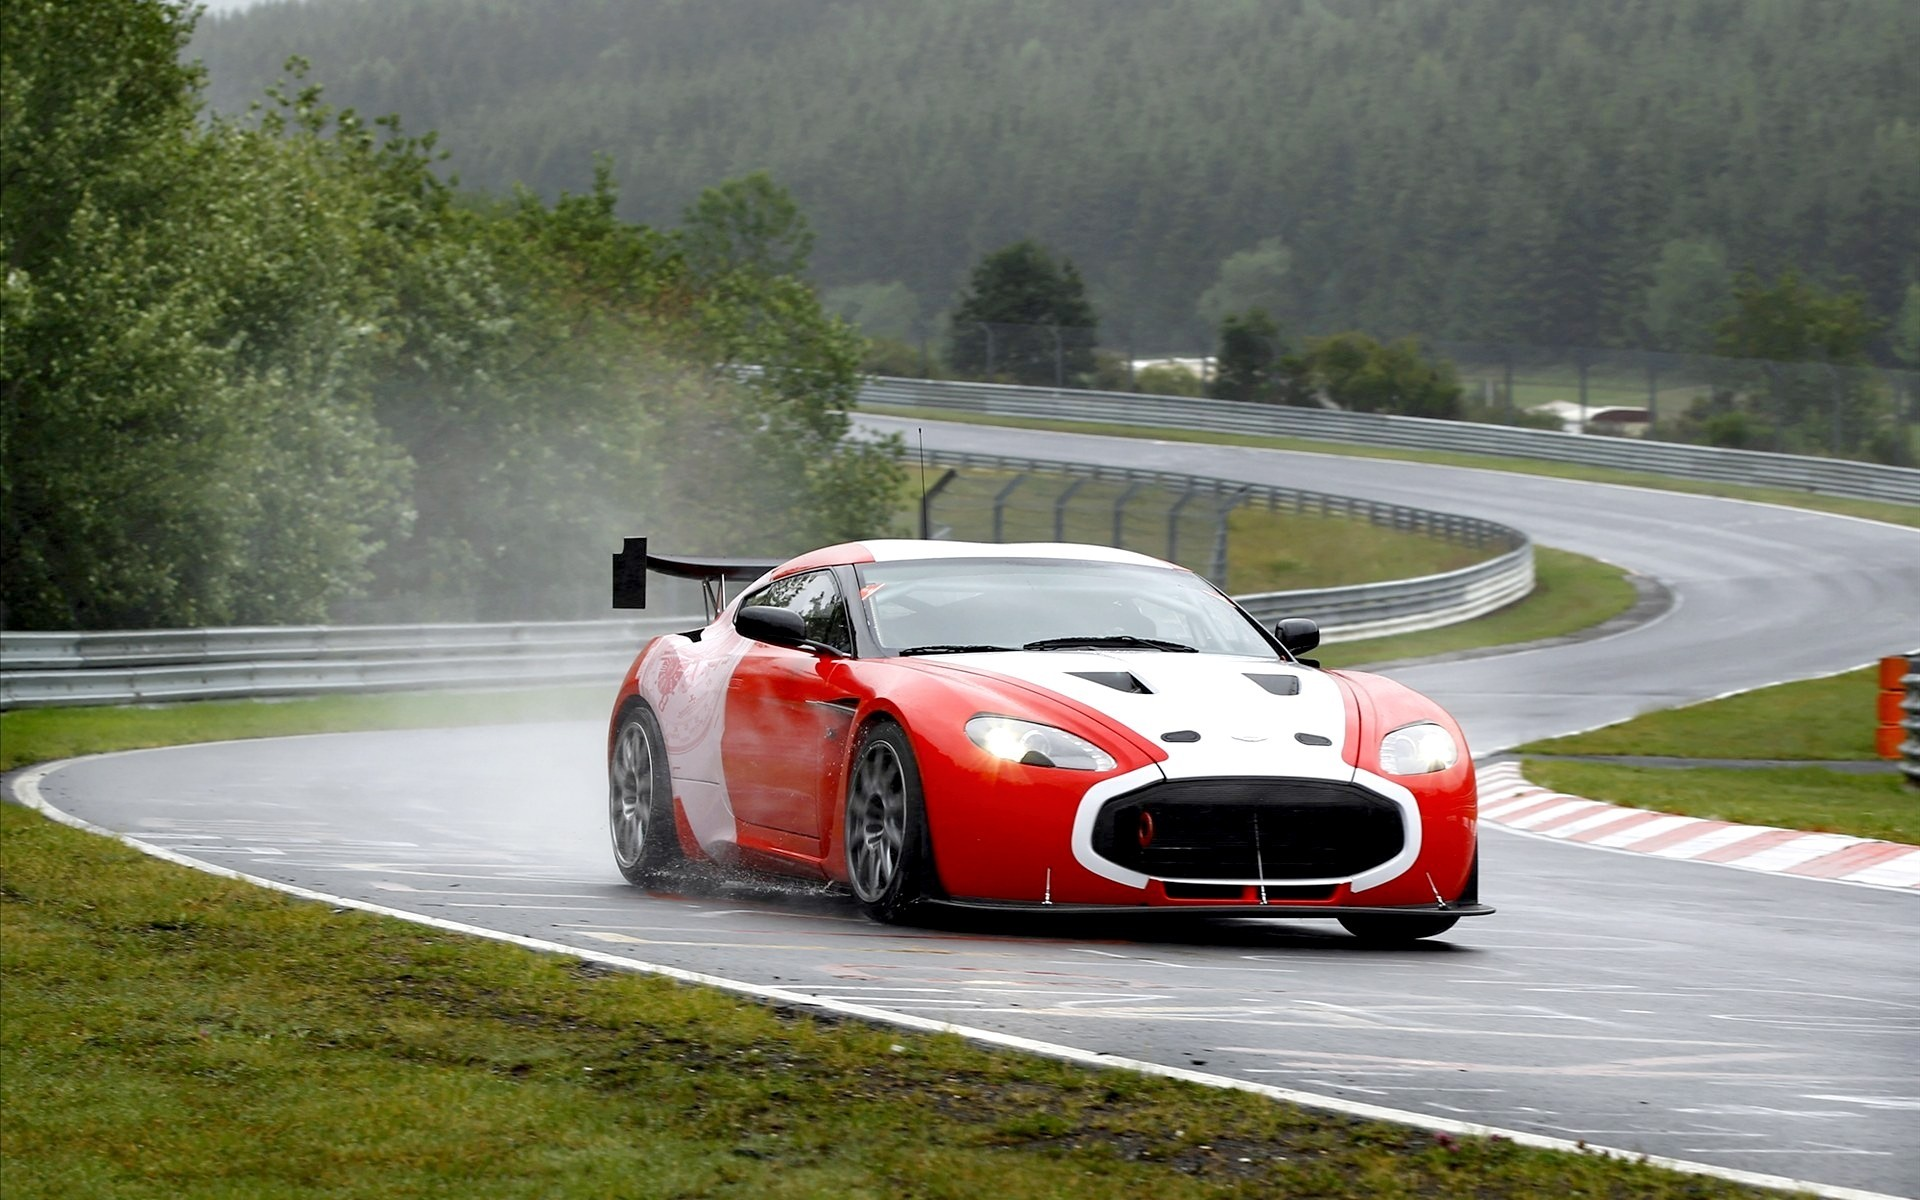 cars Aston Martin Nürburgring HD Wallpaper